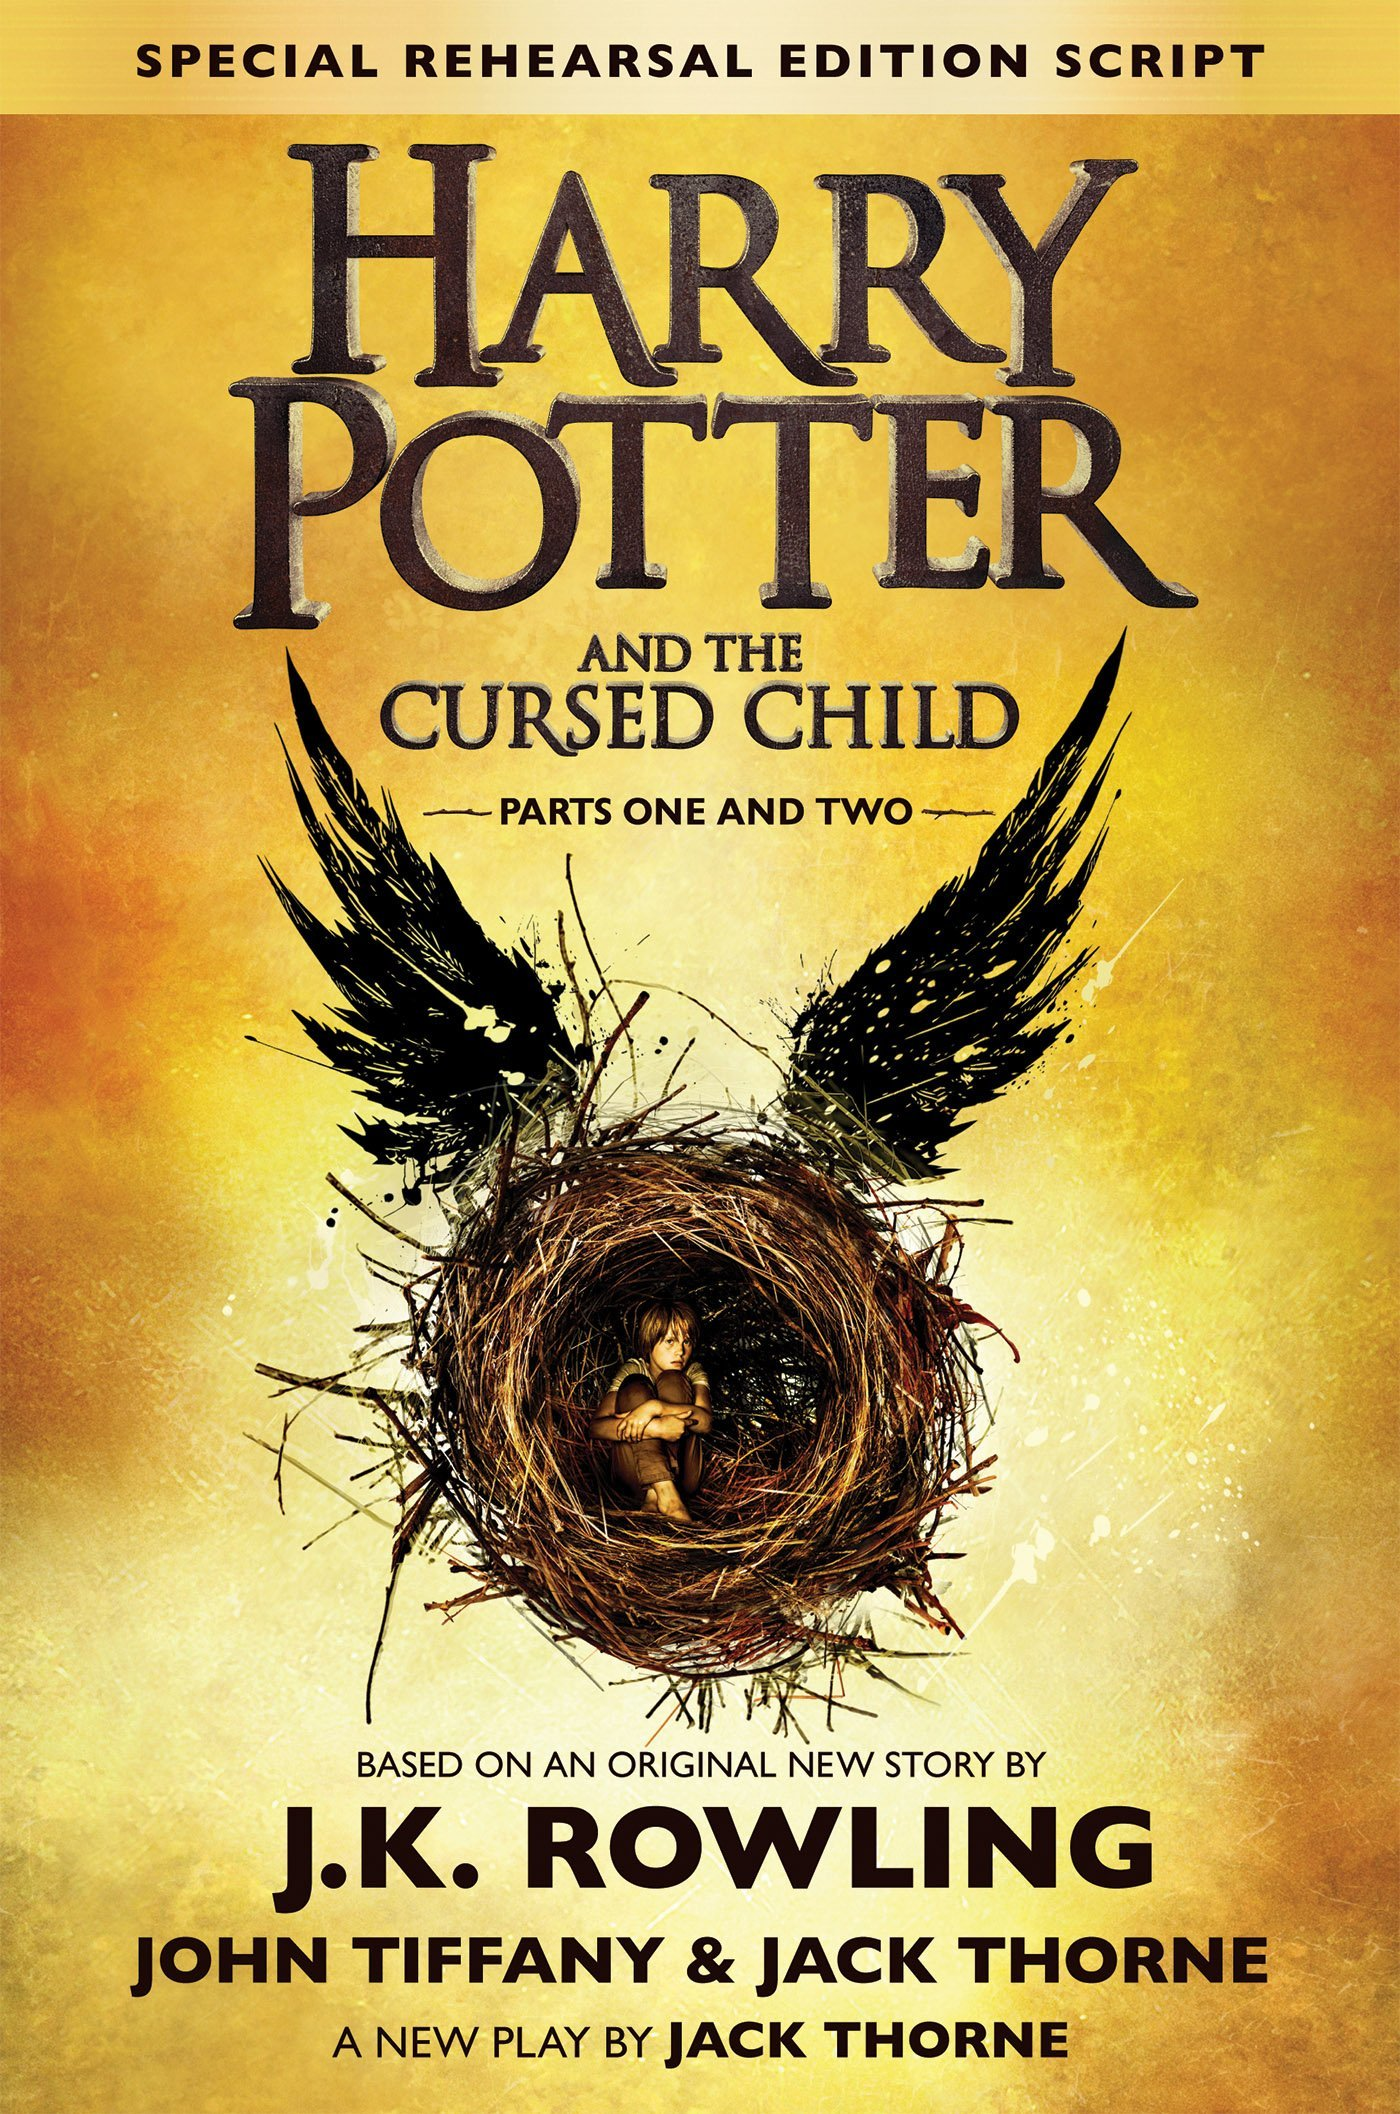 Image result for harry potter and the cursed child image